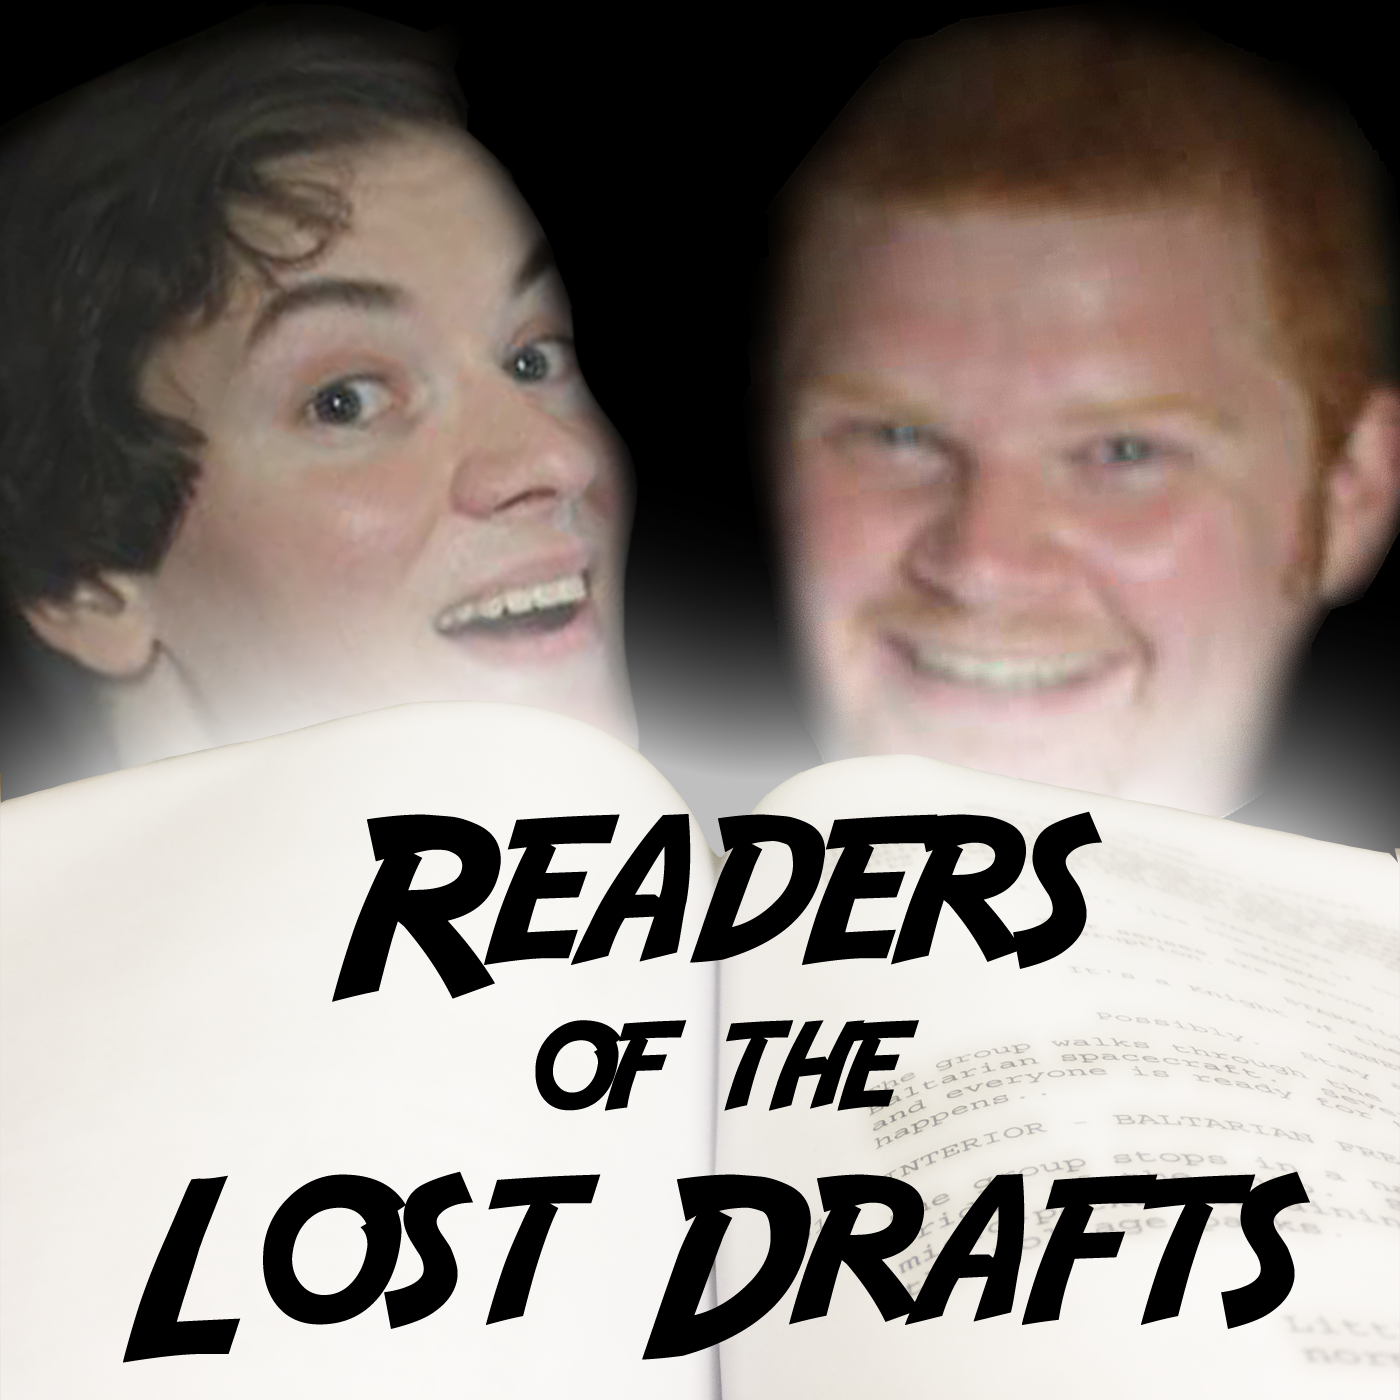 Readers of the Lost Drafts